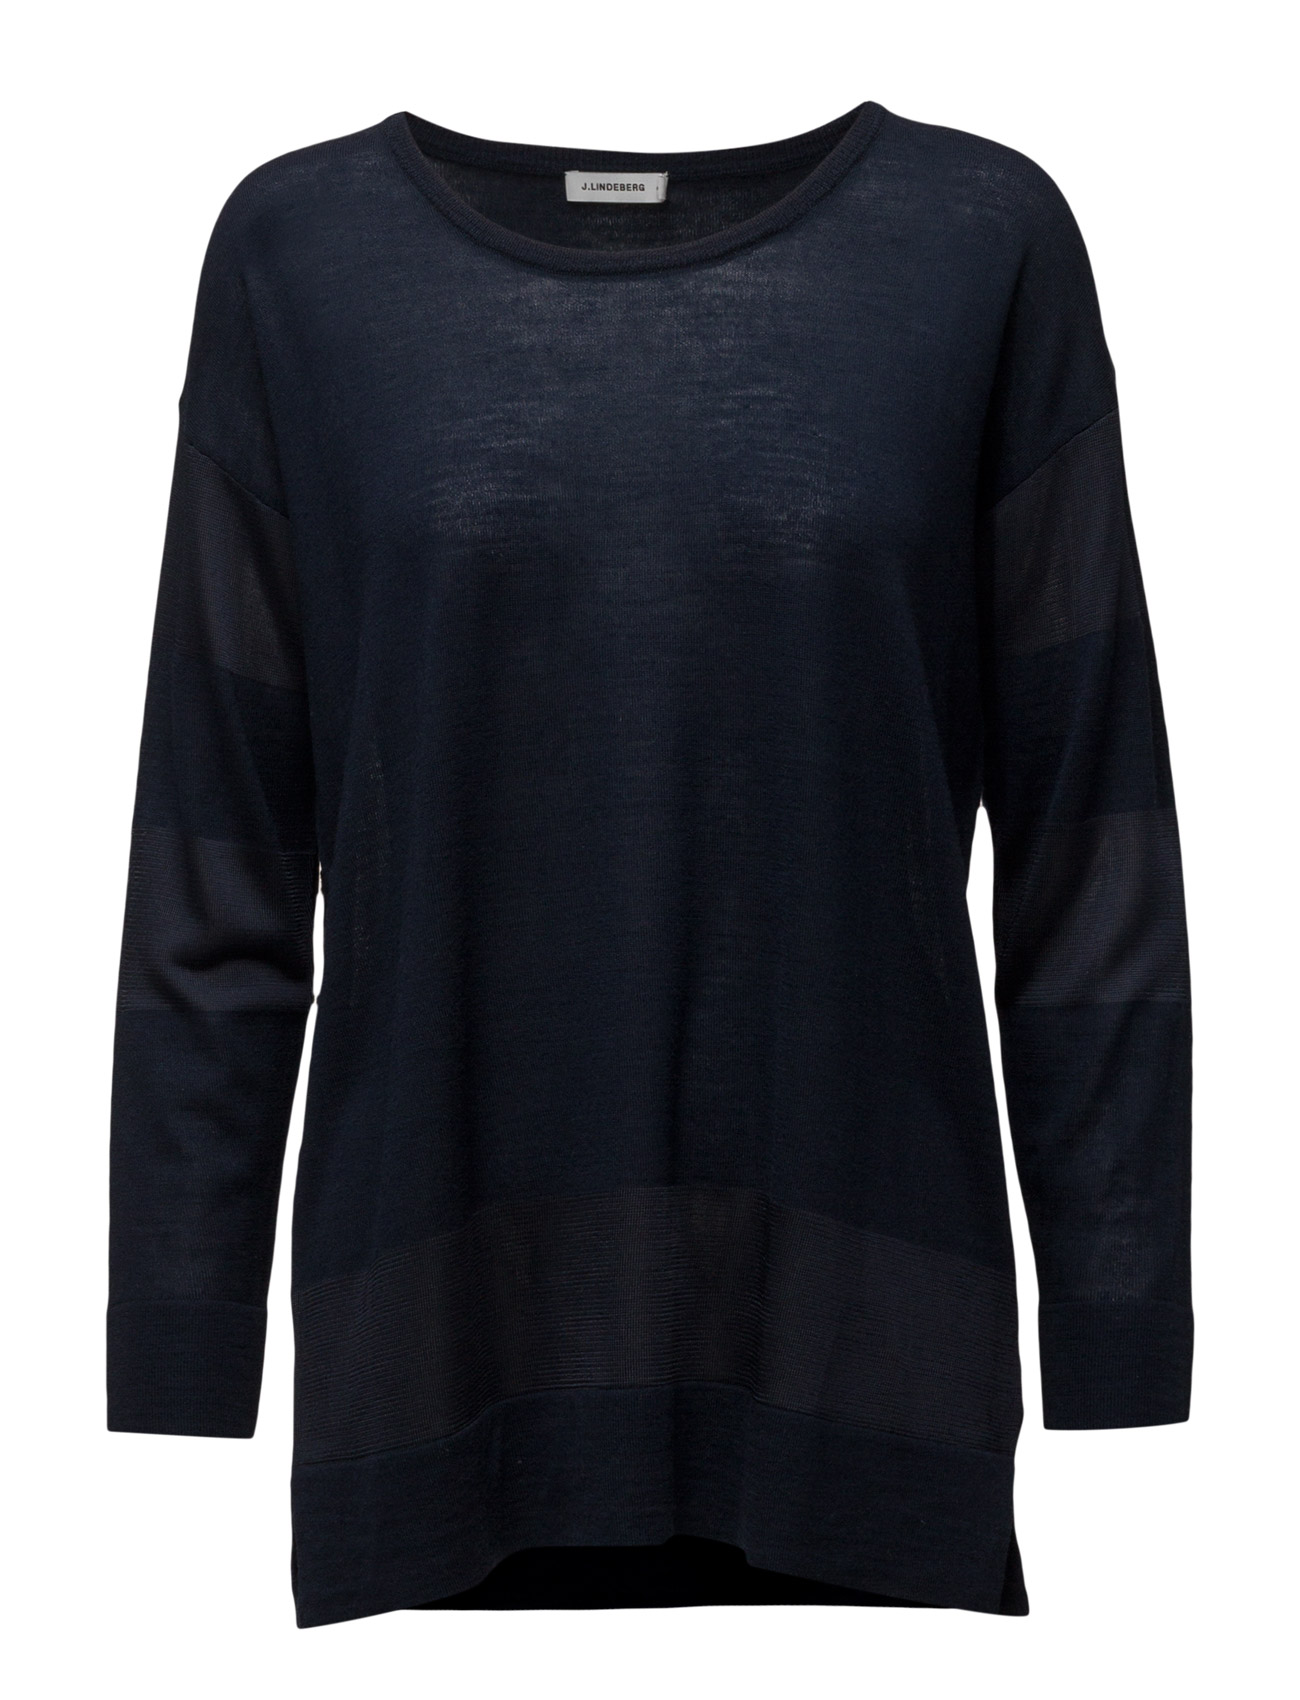 Melly Shiny Mix J. Lindeberg Sweatshirts til Damer i Navy blå